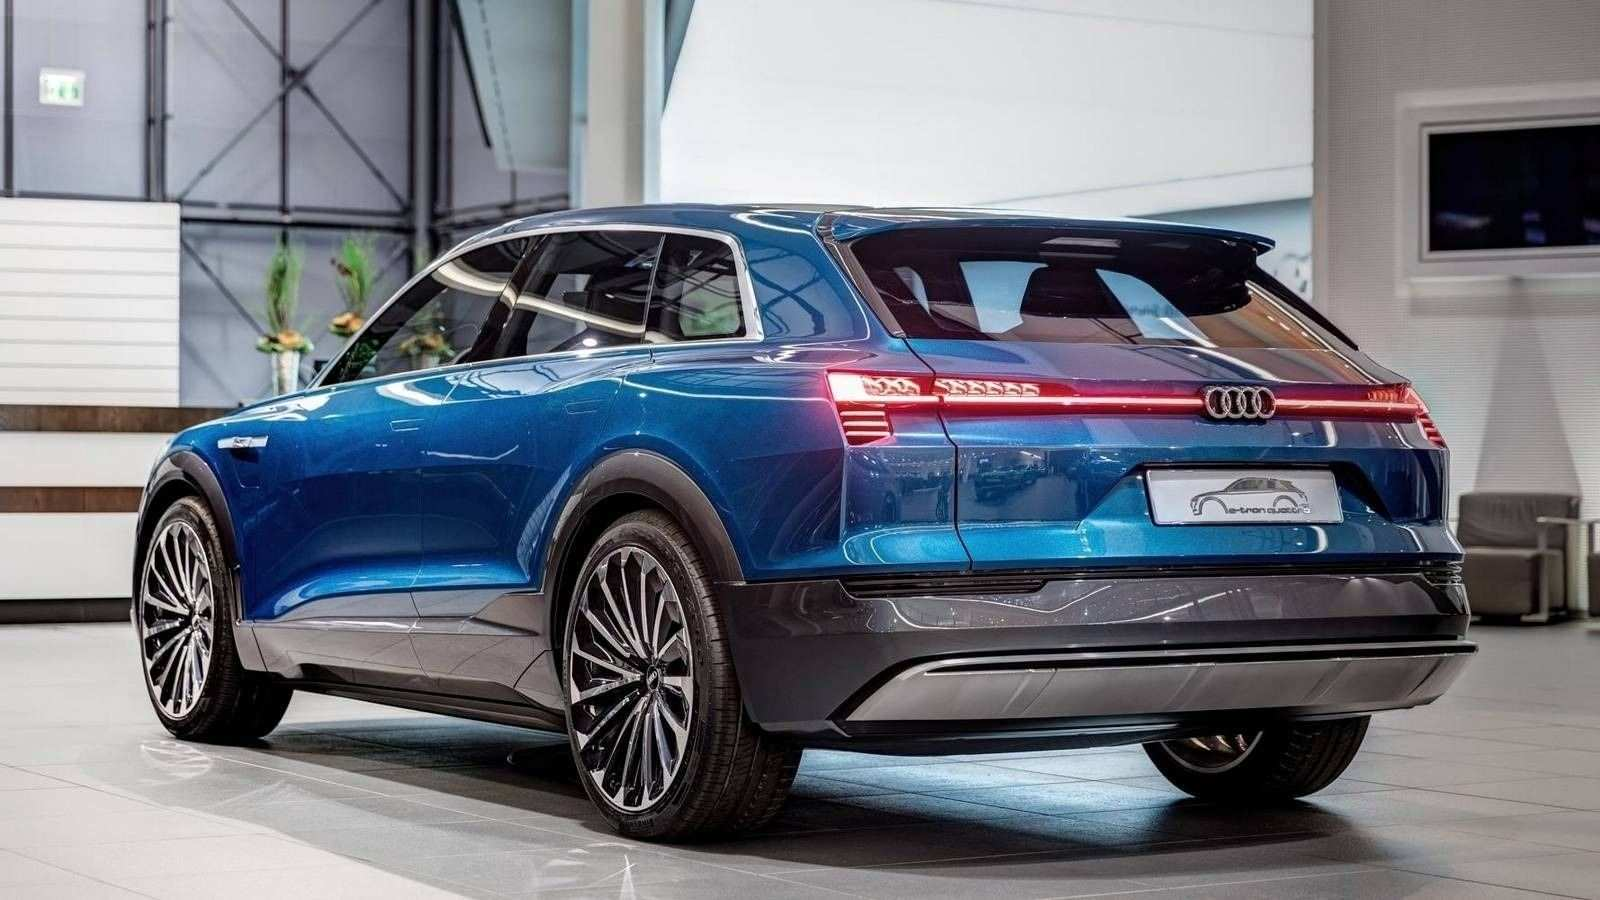 38 All New 2019 Audi Crossover Images for 2019 Audi Crossover